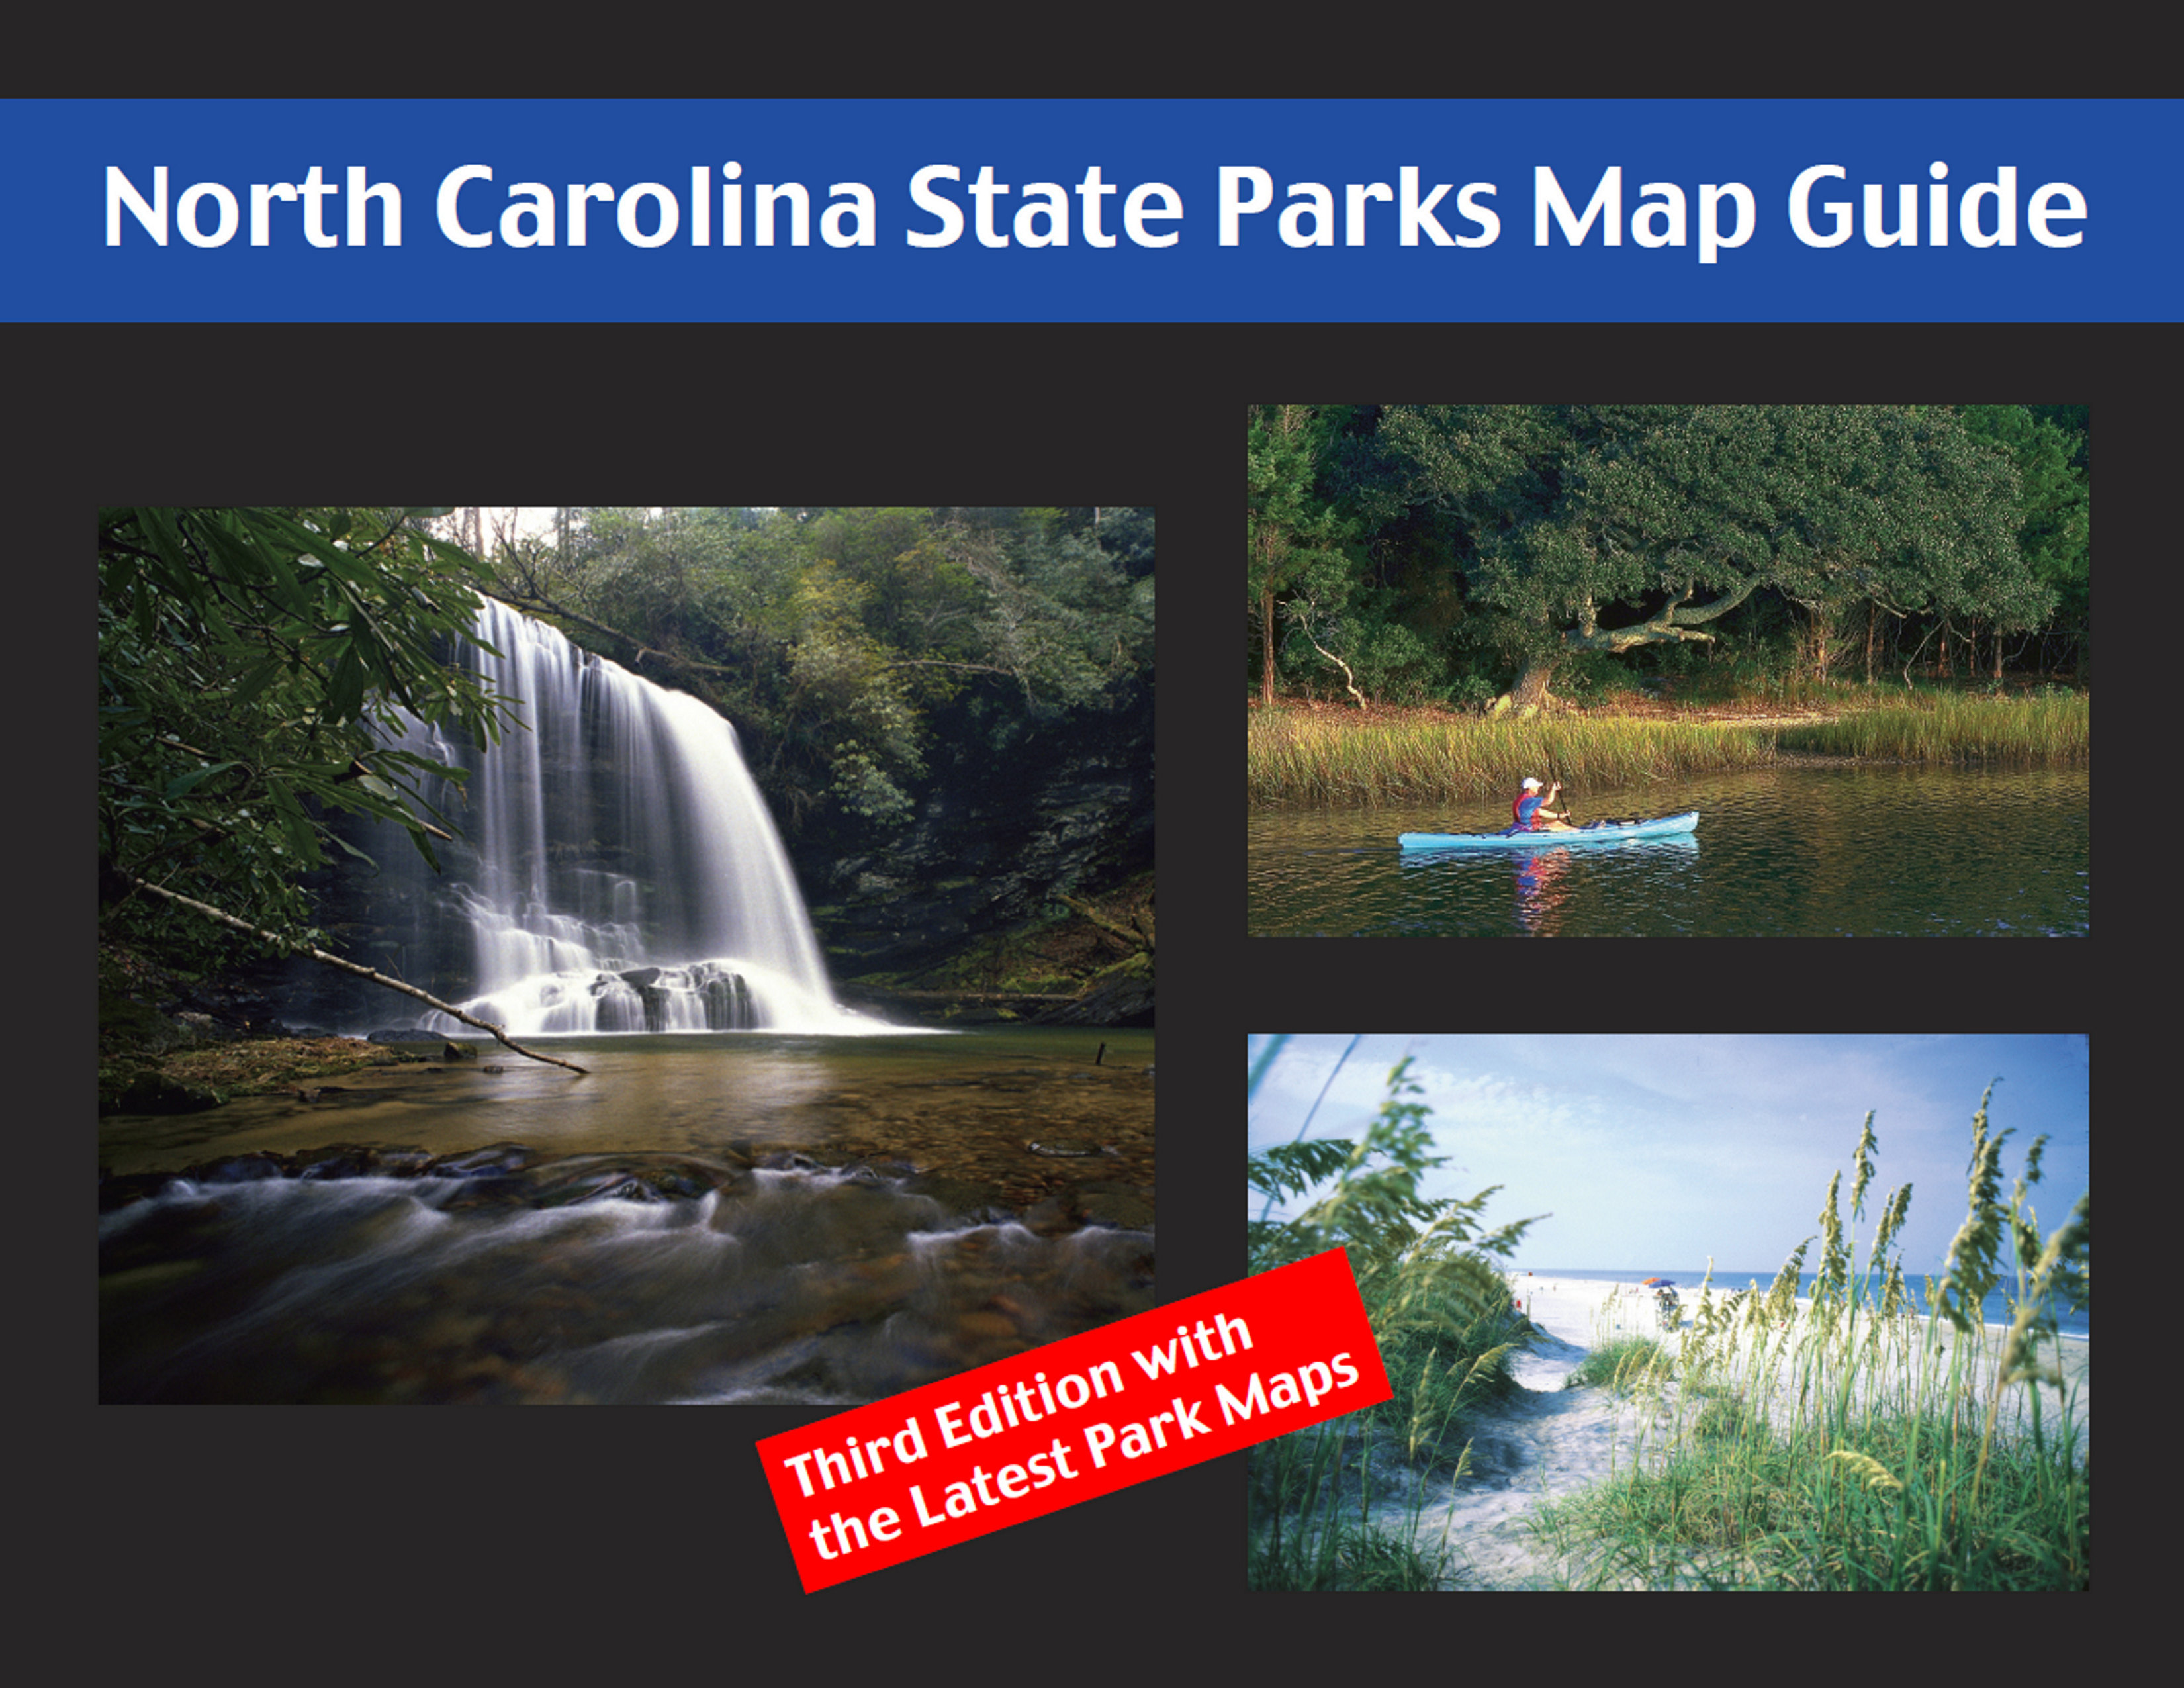 North Carolina State Parks Map Guide